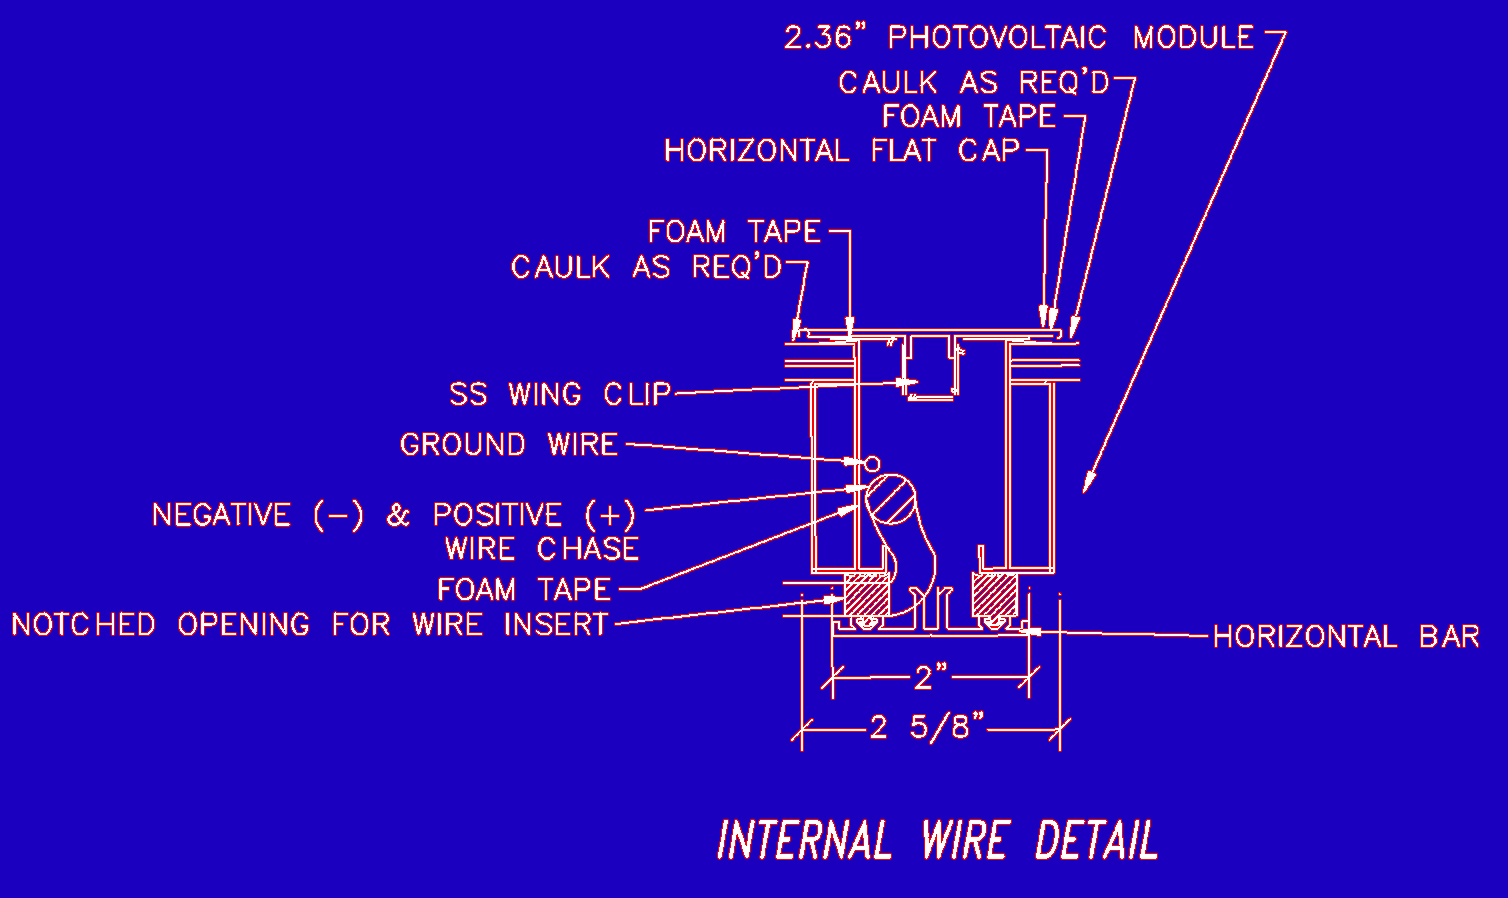 Internal Wire Chase Water Proofing Re Q Wiring Diagram All Of Florians Systems Are Designed To Allow The Pv Panel Wires Run Throughout An Grid Which Not Only Creates A Clean Look On Outside